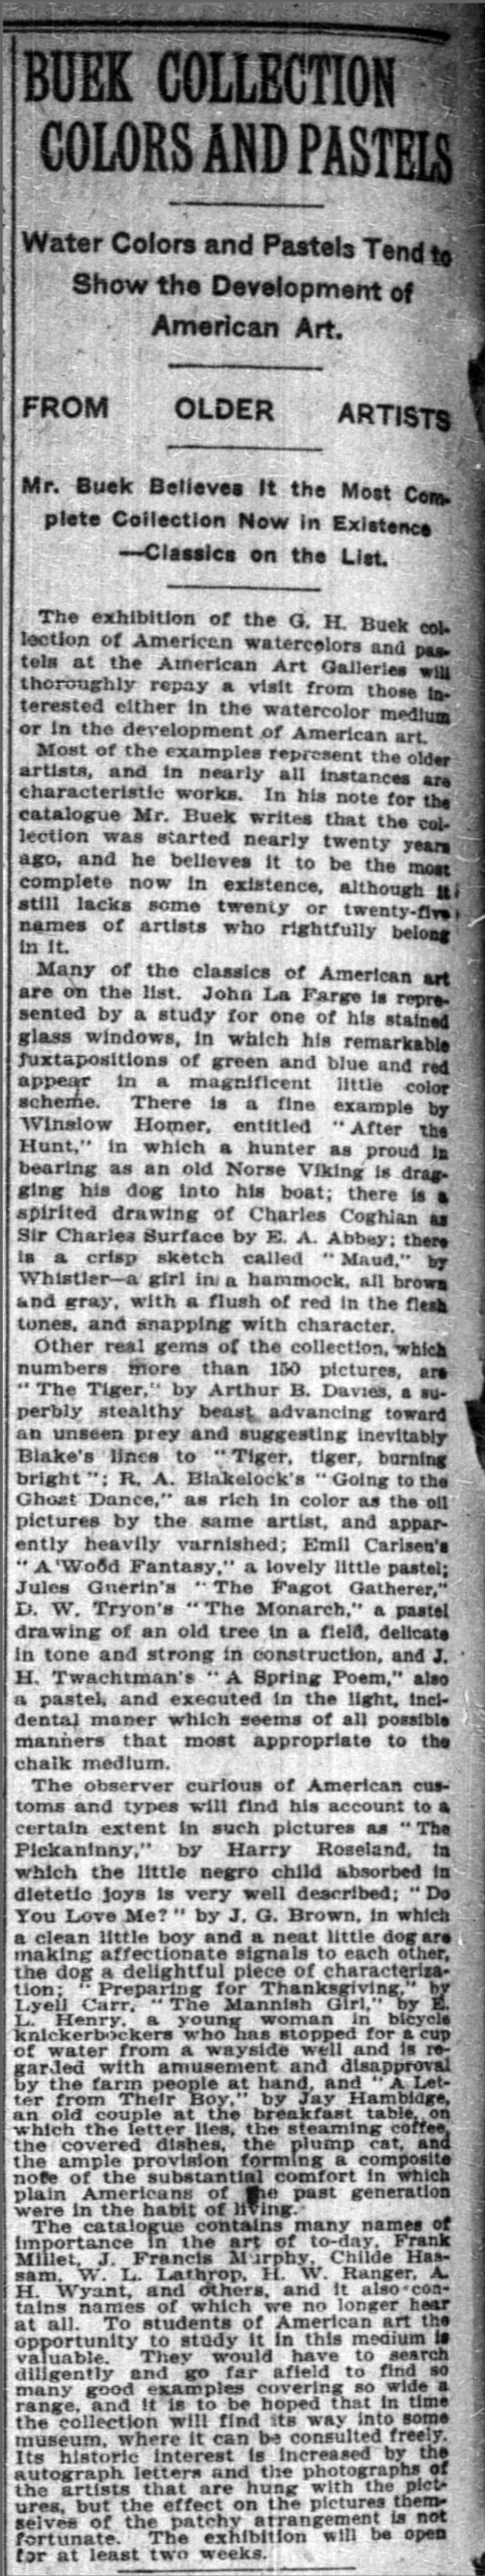 "New York Times, New York, NY, ""Buek collection colors and pastels : water colors and pastels tend to show the development of American art"", Friday, May 21, 1909, page 8, not illustrated."